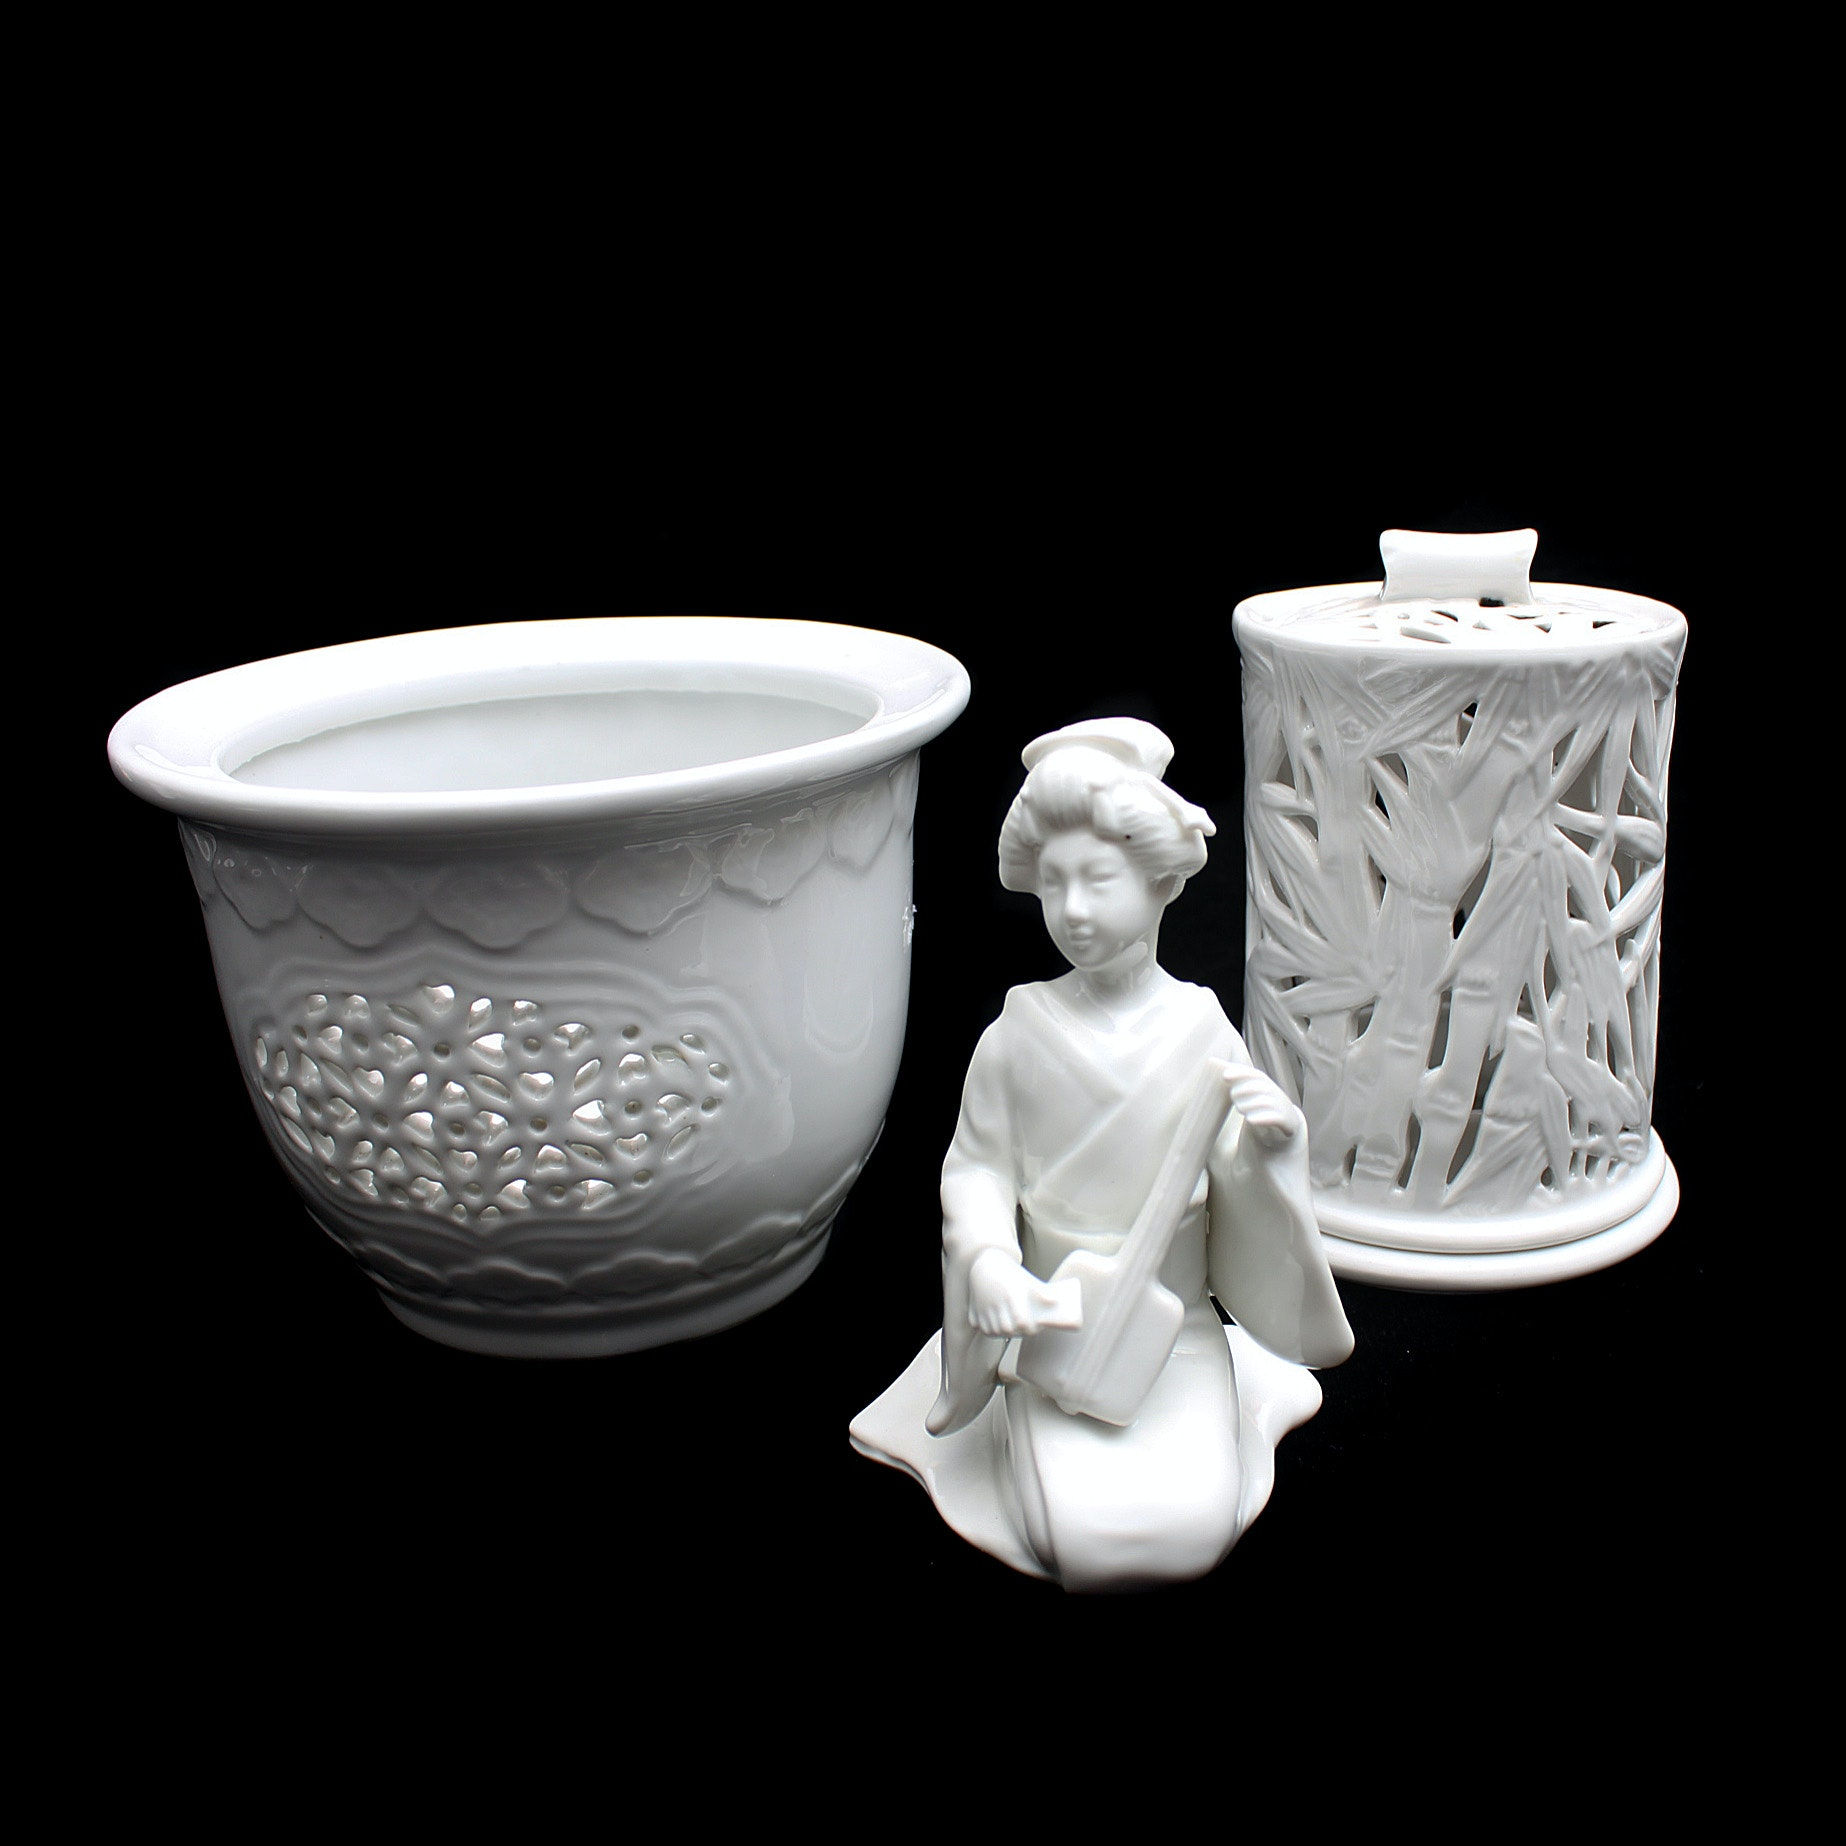 Asian Inspired White Ceramic Decor Items Including Fitz and Floyd